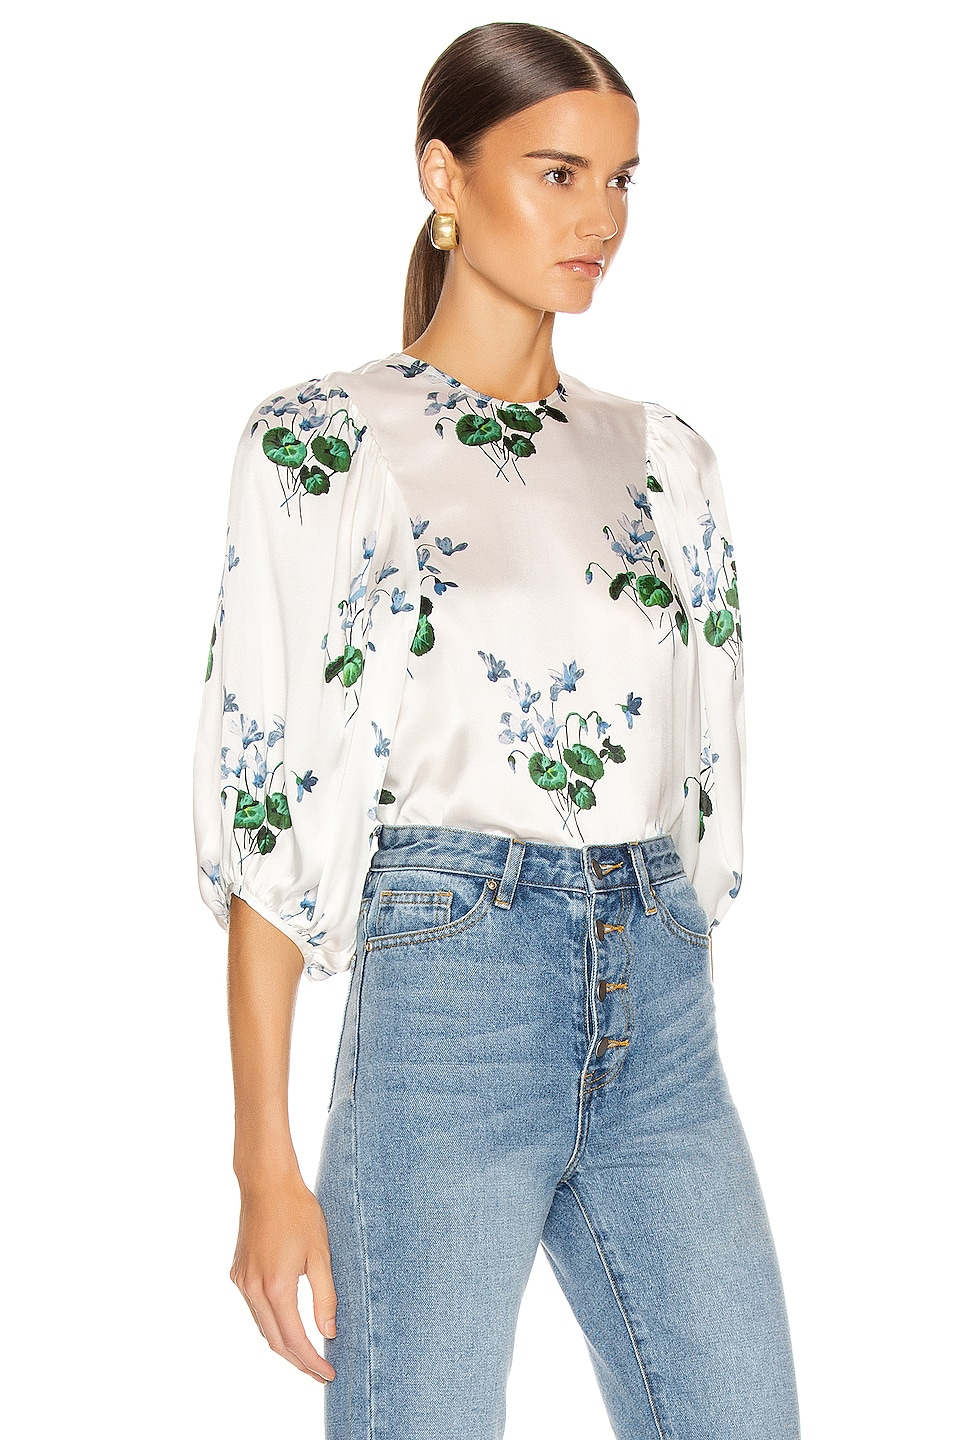 Image 2 of Les Reveries Puff Sleeve Top in Blue Daffodil & White